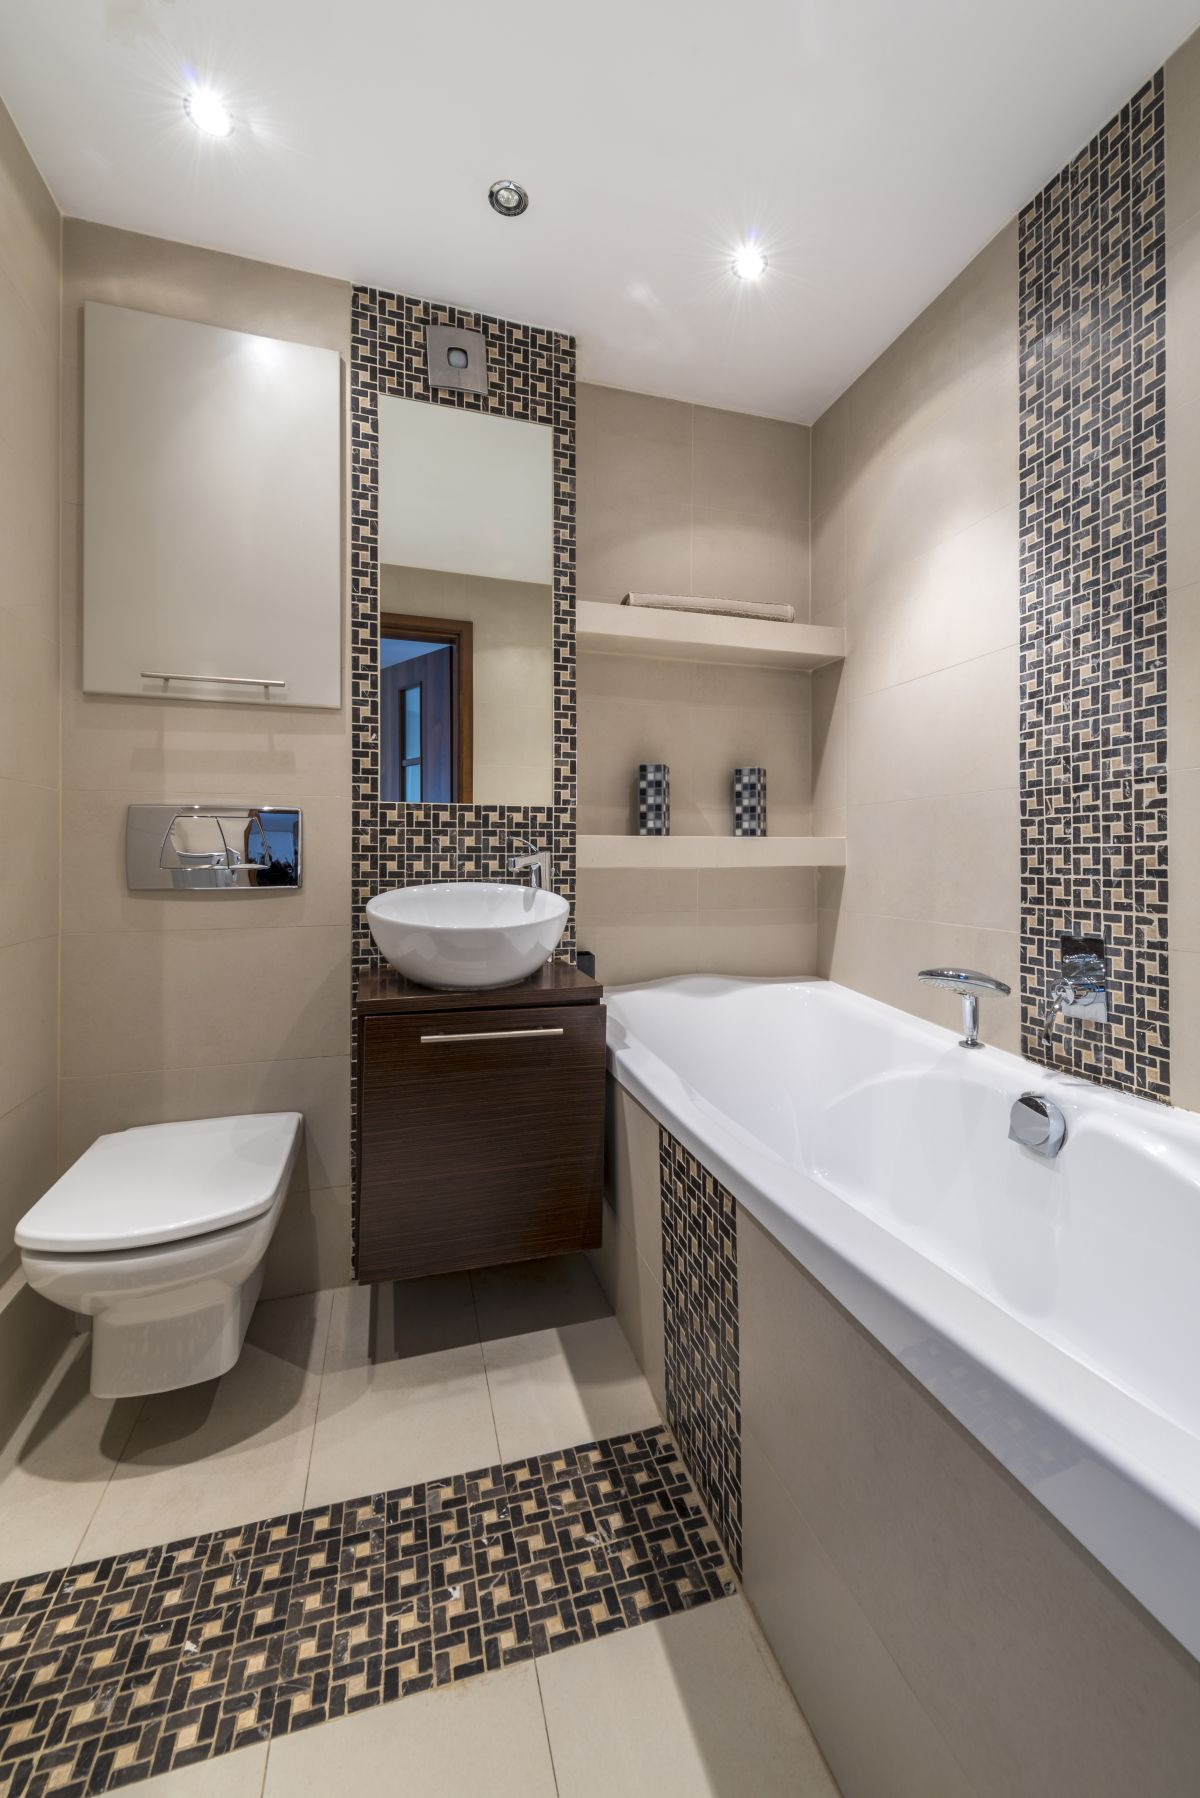 Size matters bathroom renovation costs for your size bath for Pictures of renovated small bathrooms